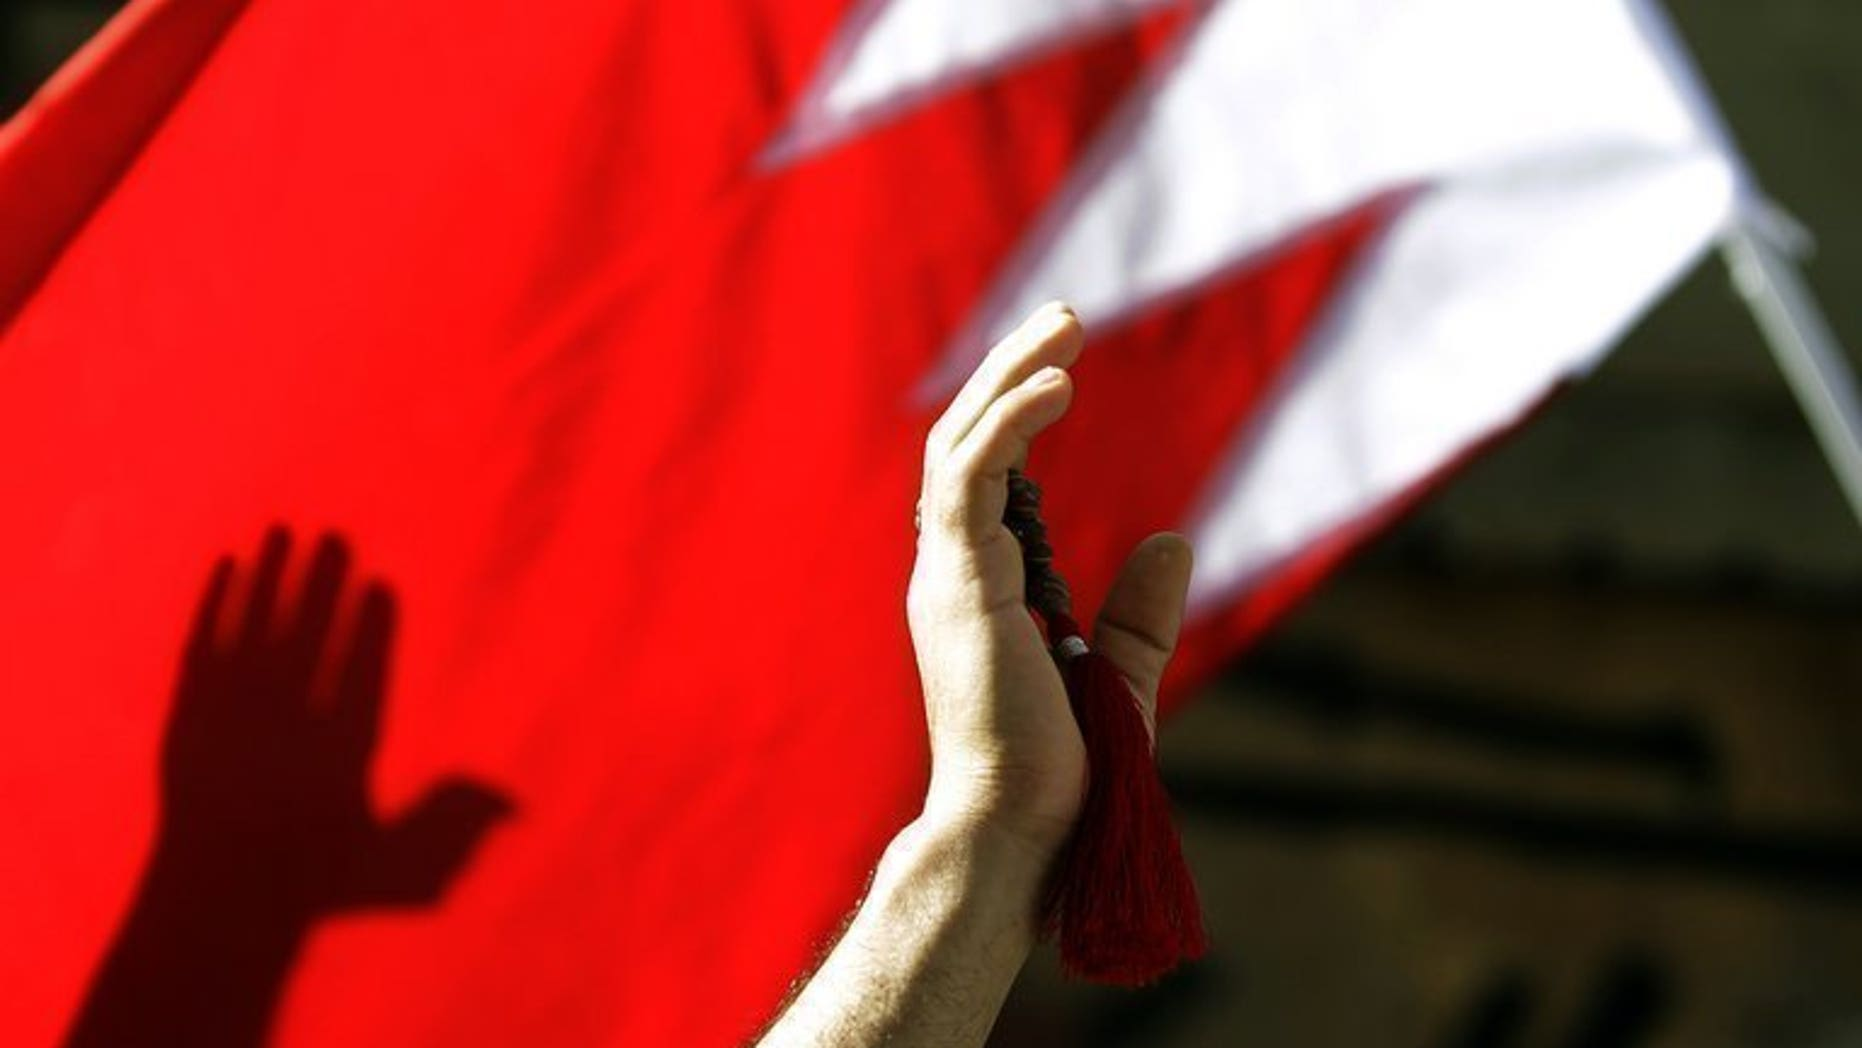 A Shiite protester waves a Bahrain flag during a rally in Manama, on March 22, 2011. Bahrain police say they have recaptured two men suspected of attacks on security forces, two months after they escaped from custody along with other detainees.